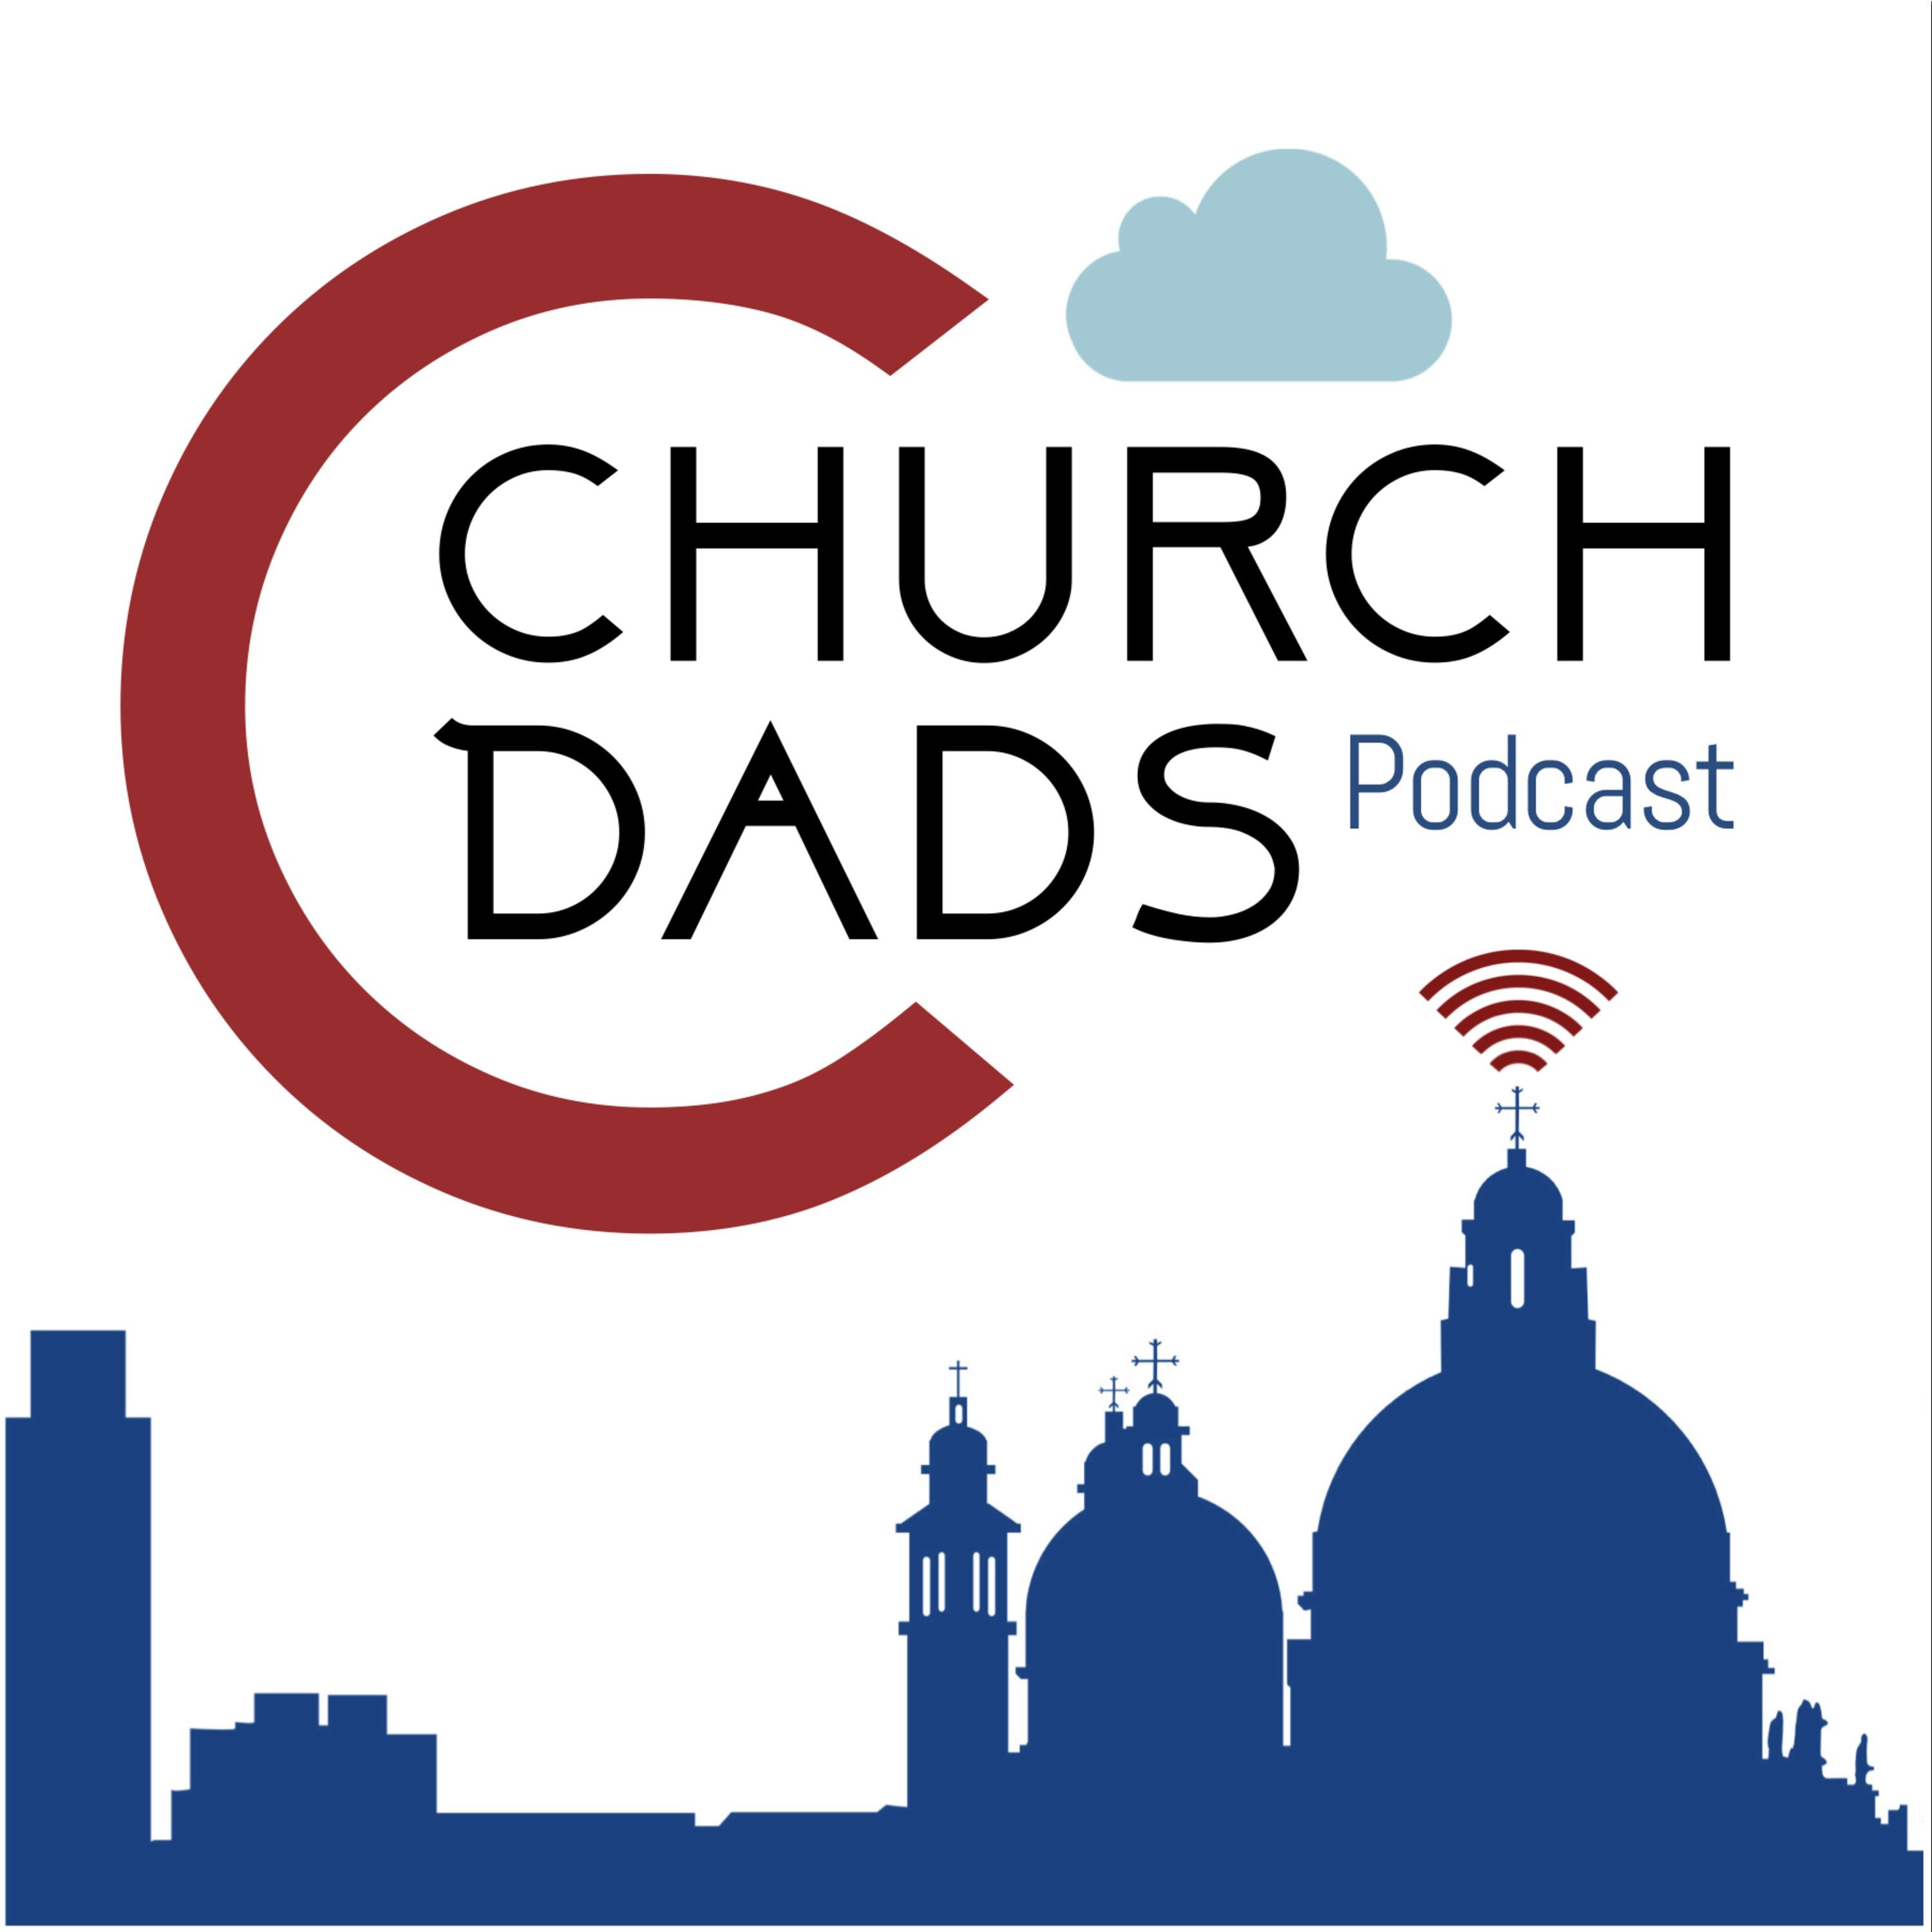 Church Dads Podcast